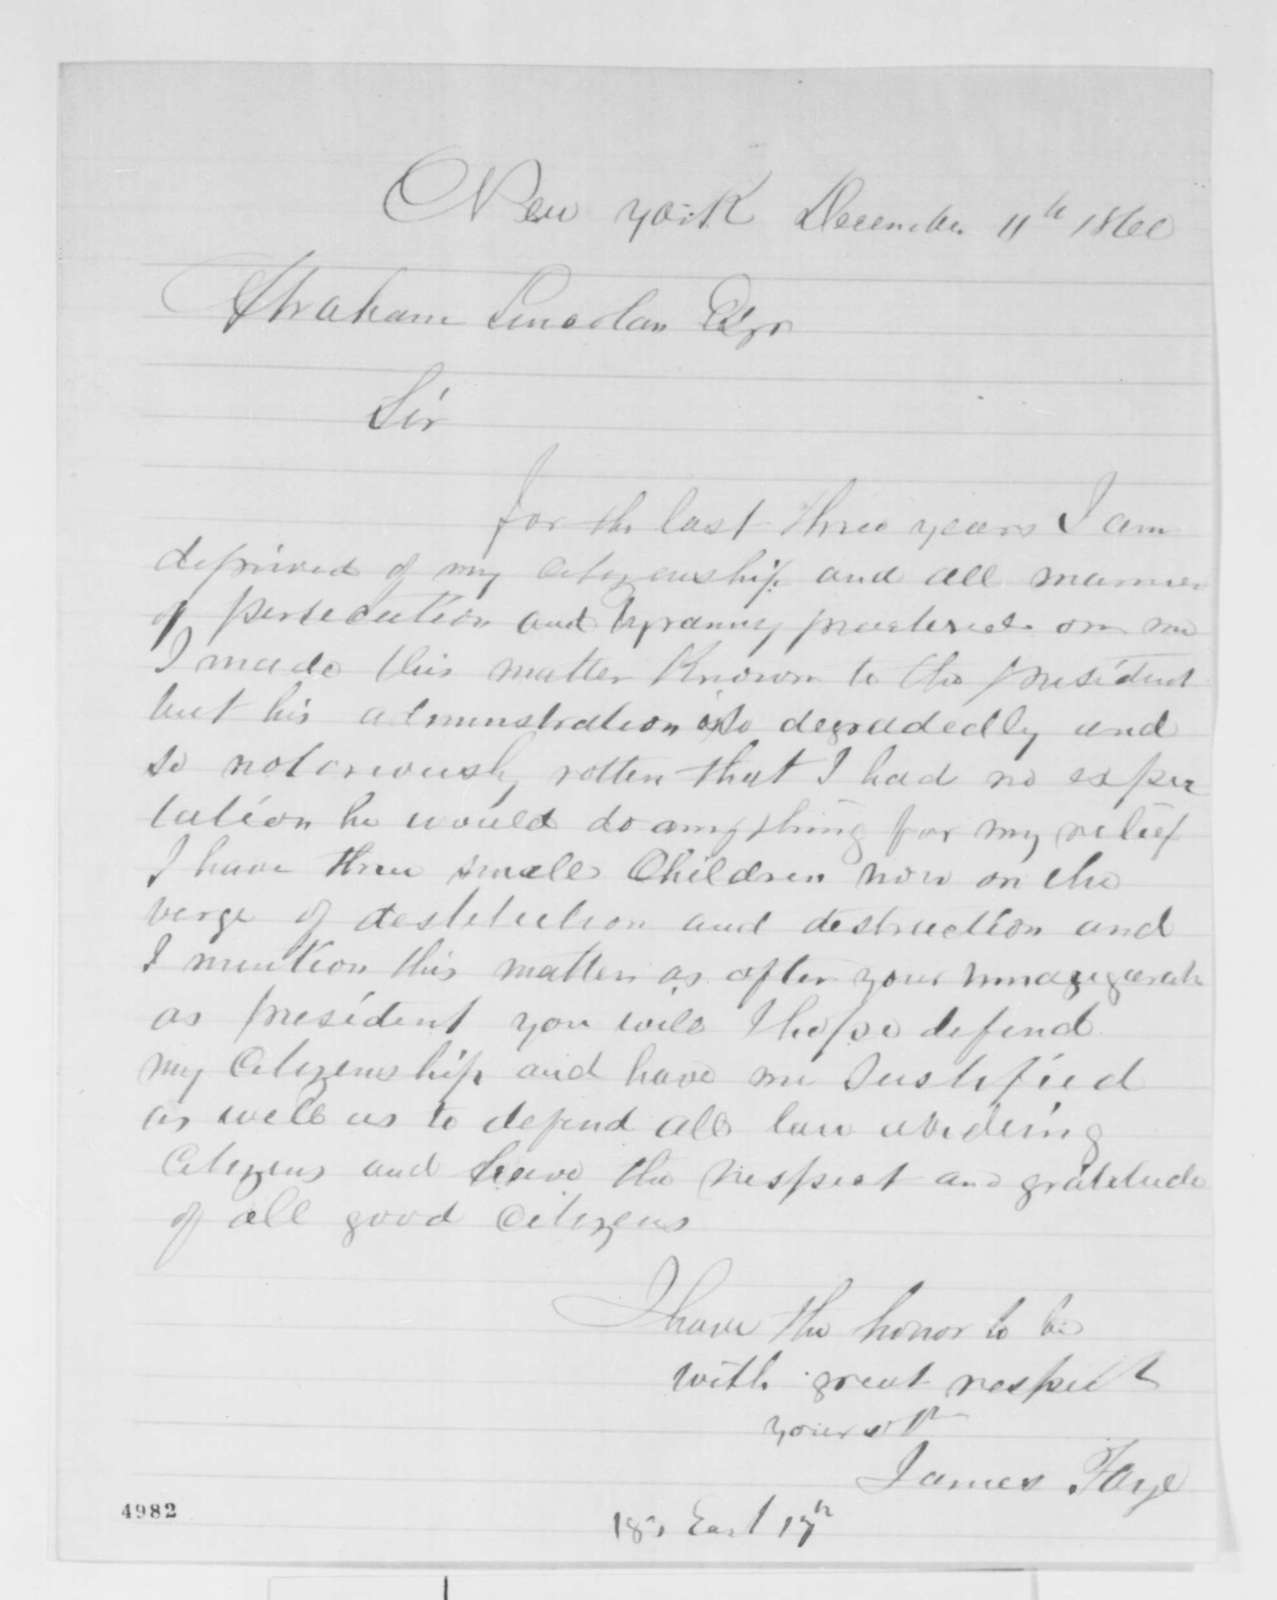 James Faye to Abraham Lincoln, Tuesday, December 11, 1860  (Has no means and seeks relief)